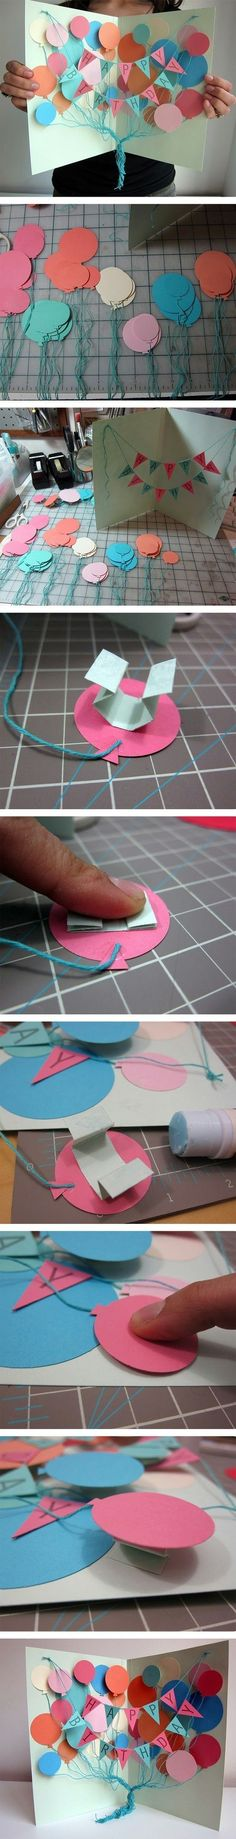 Cool pop-up card DIY